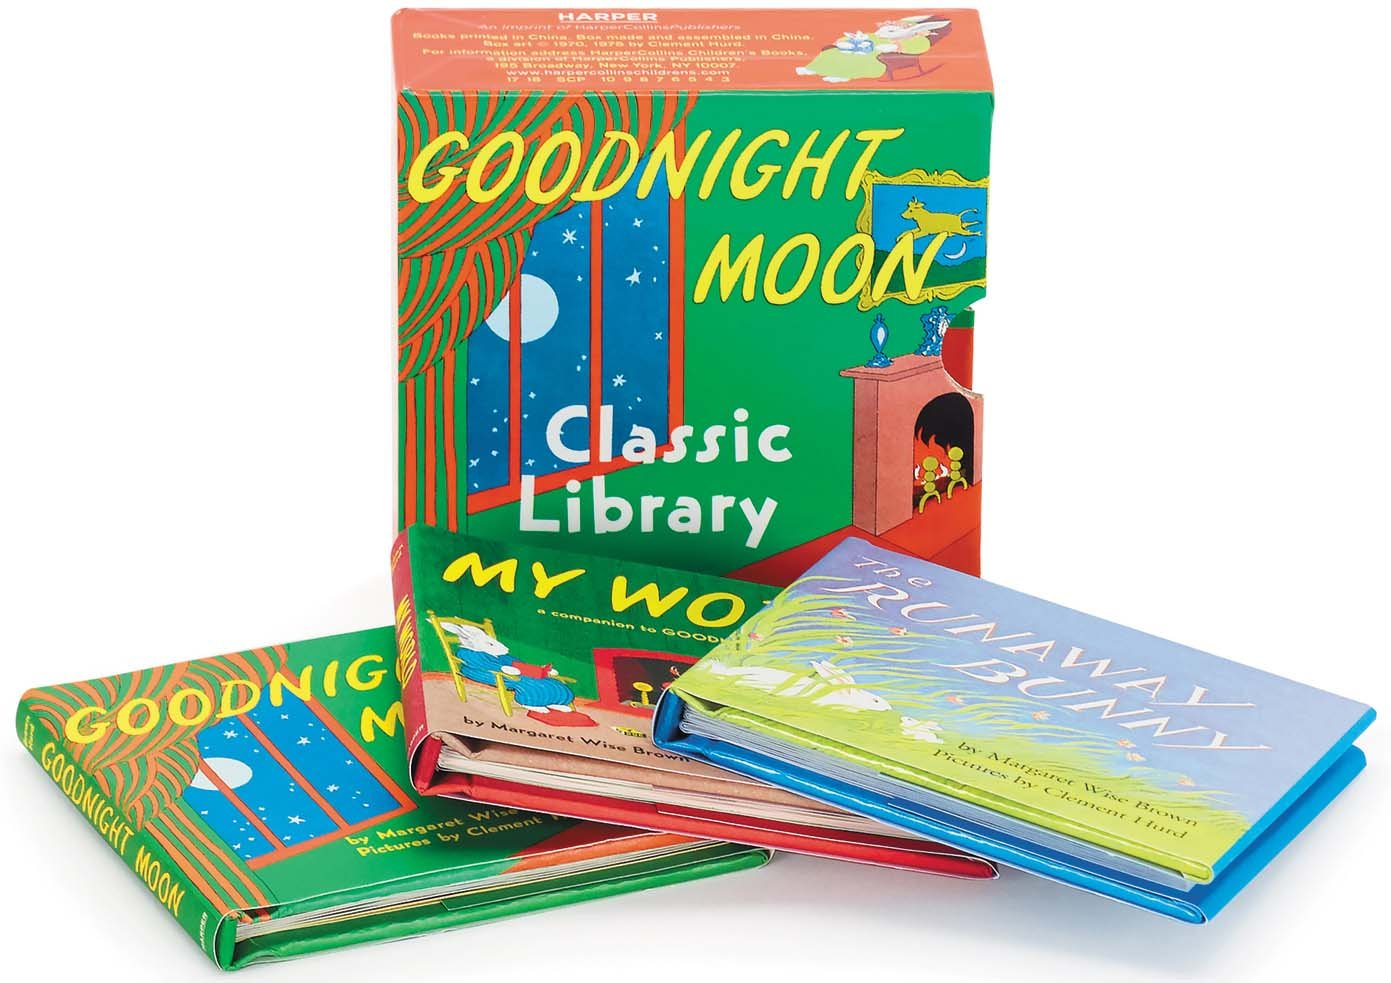 goodnight-moon-classic-library-contains-goodnight-moon-the-runaway-bunny-and-my-world-miniature-edition